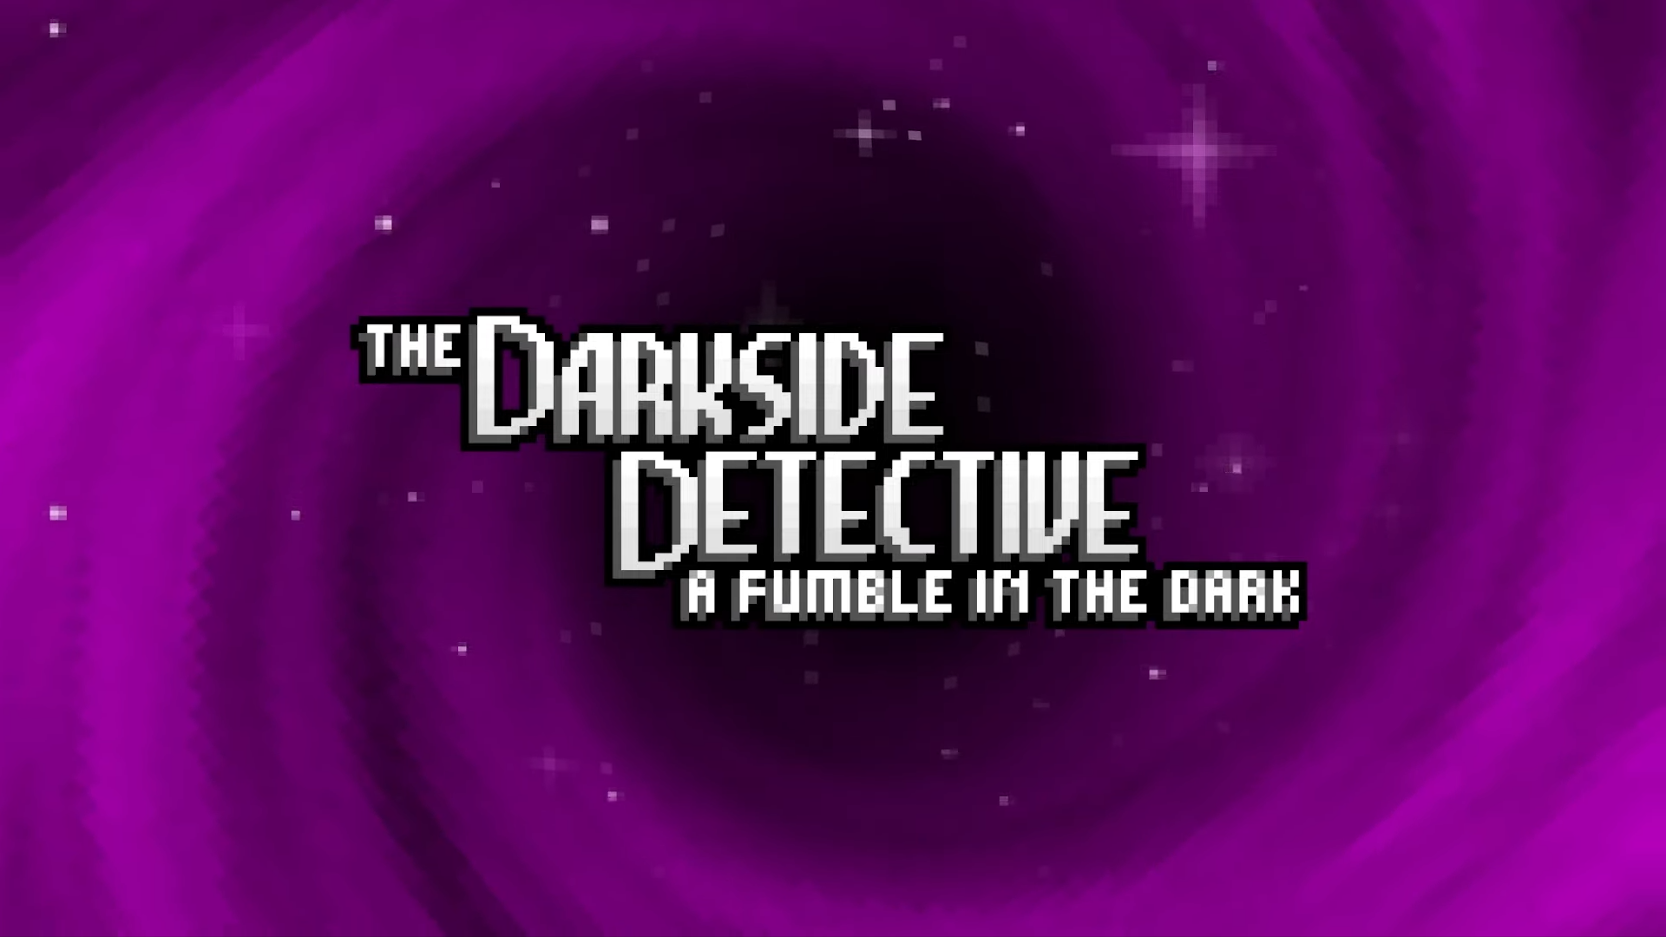 The Darkside Detective A Fumble In The Dark is out NOW